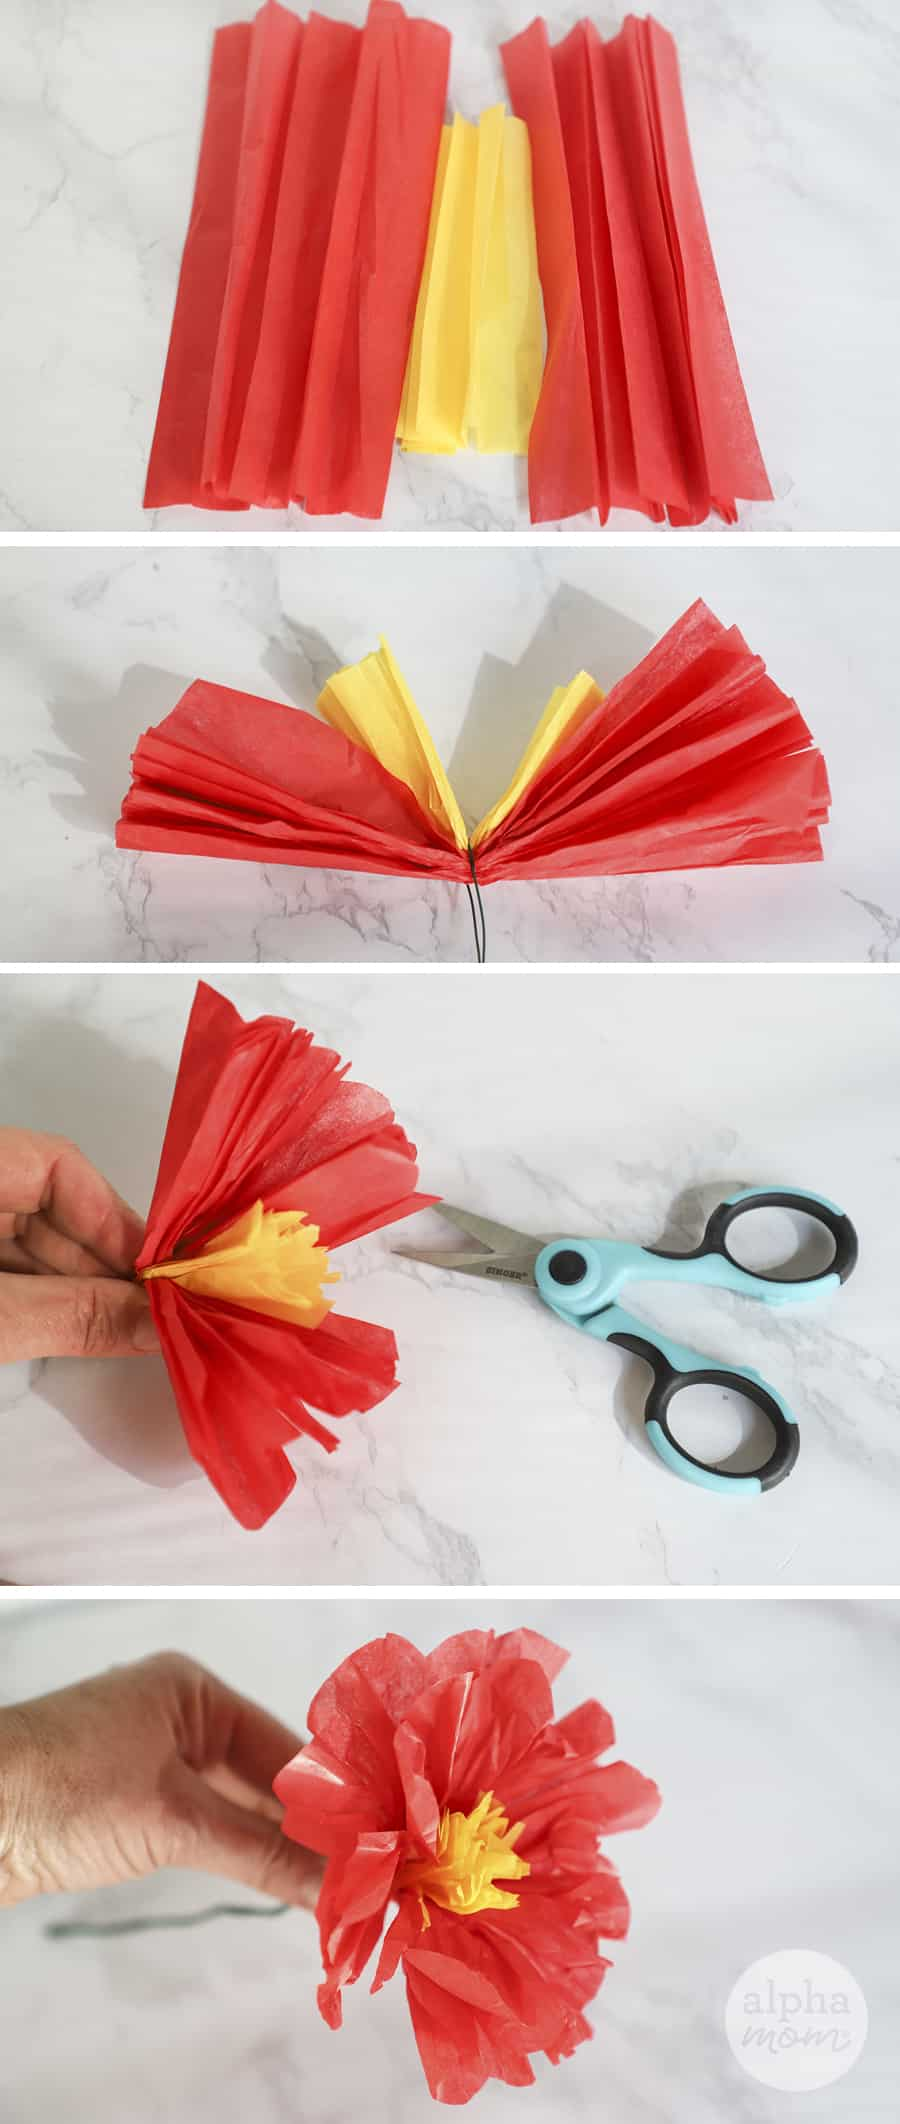 four photos showing how to make a red paper flower with yellow center